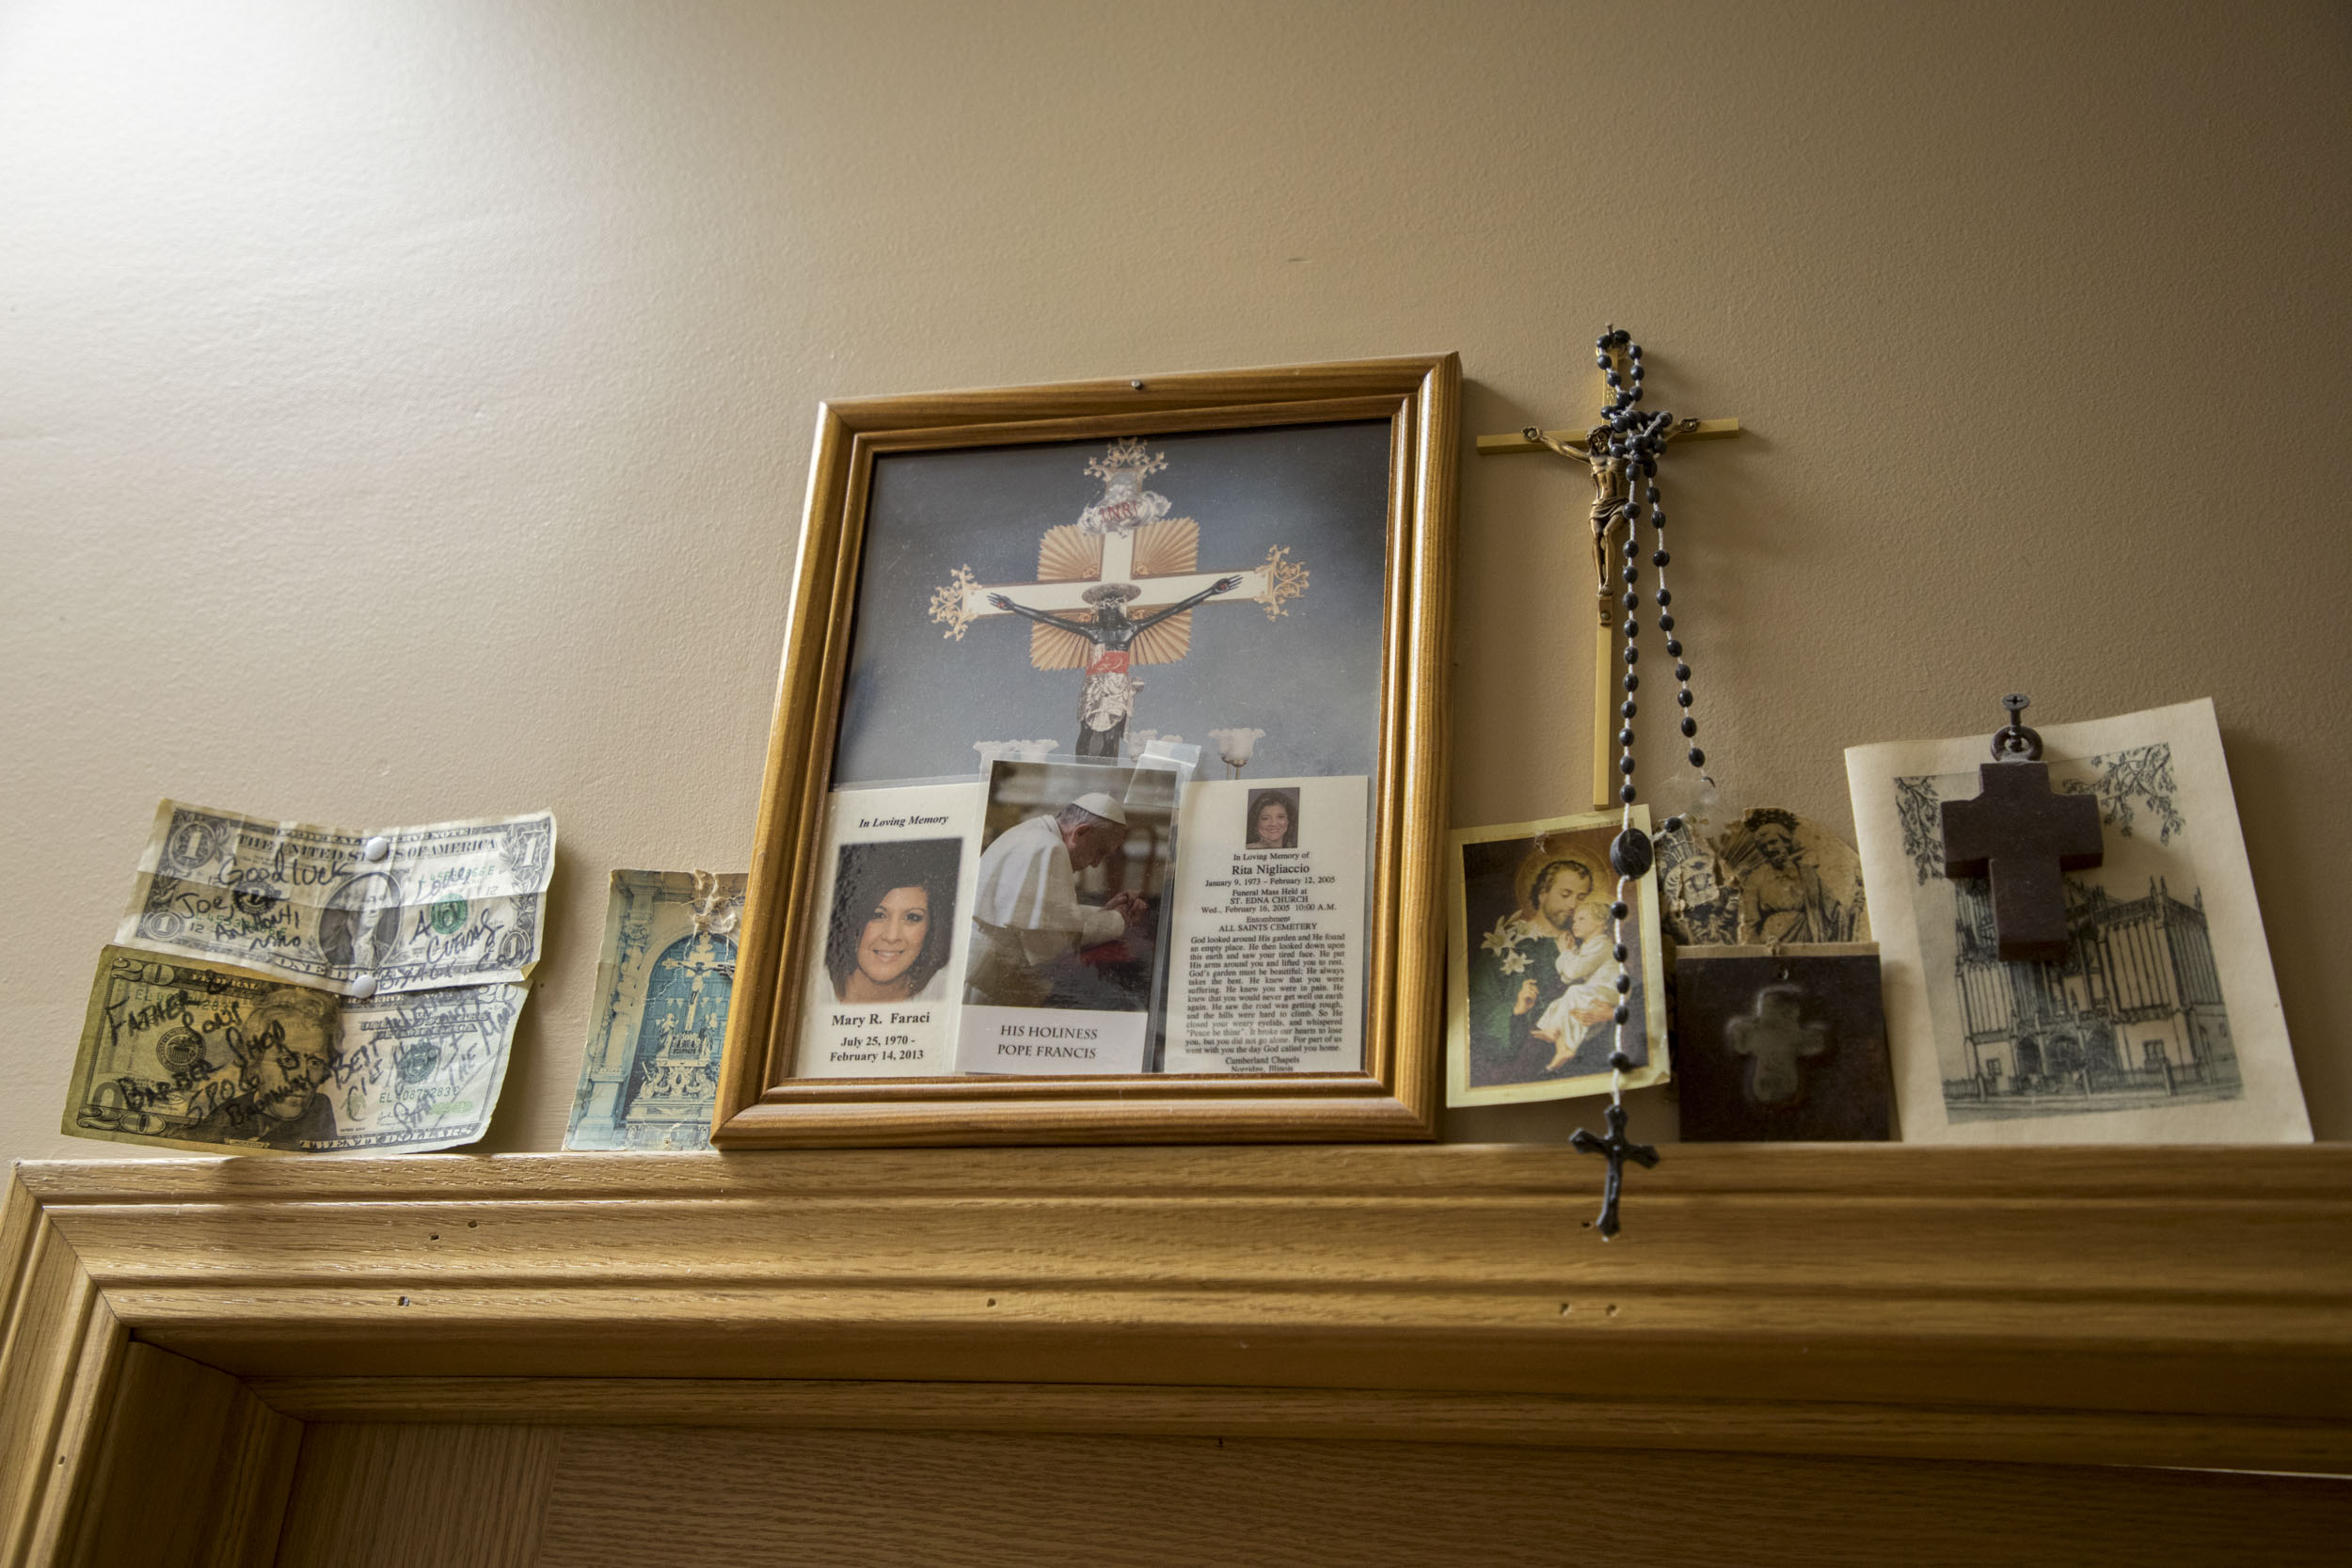 Crucifixes and images of the Virgin Mary hang above a door at Father and Son barbershop. (Andrew Gill/WBEZ)